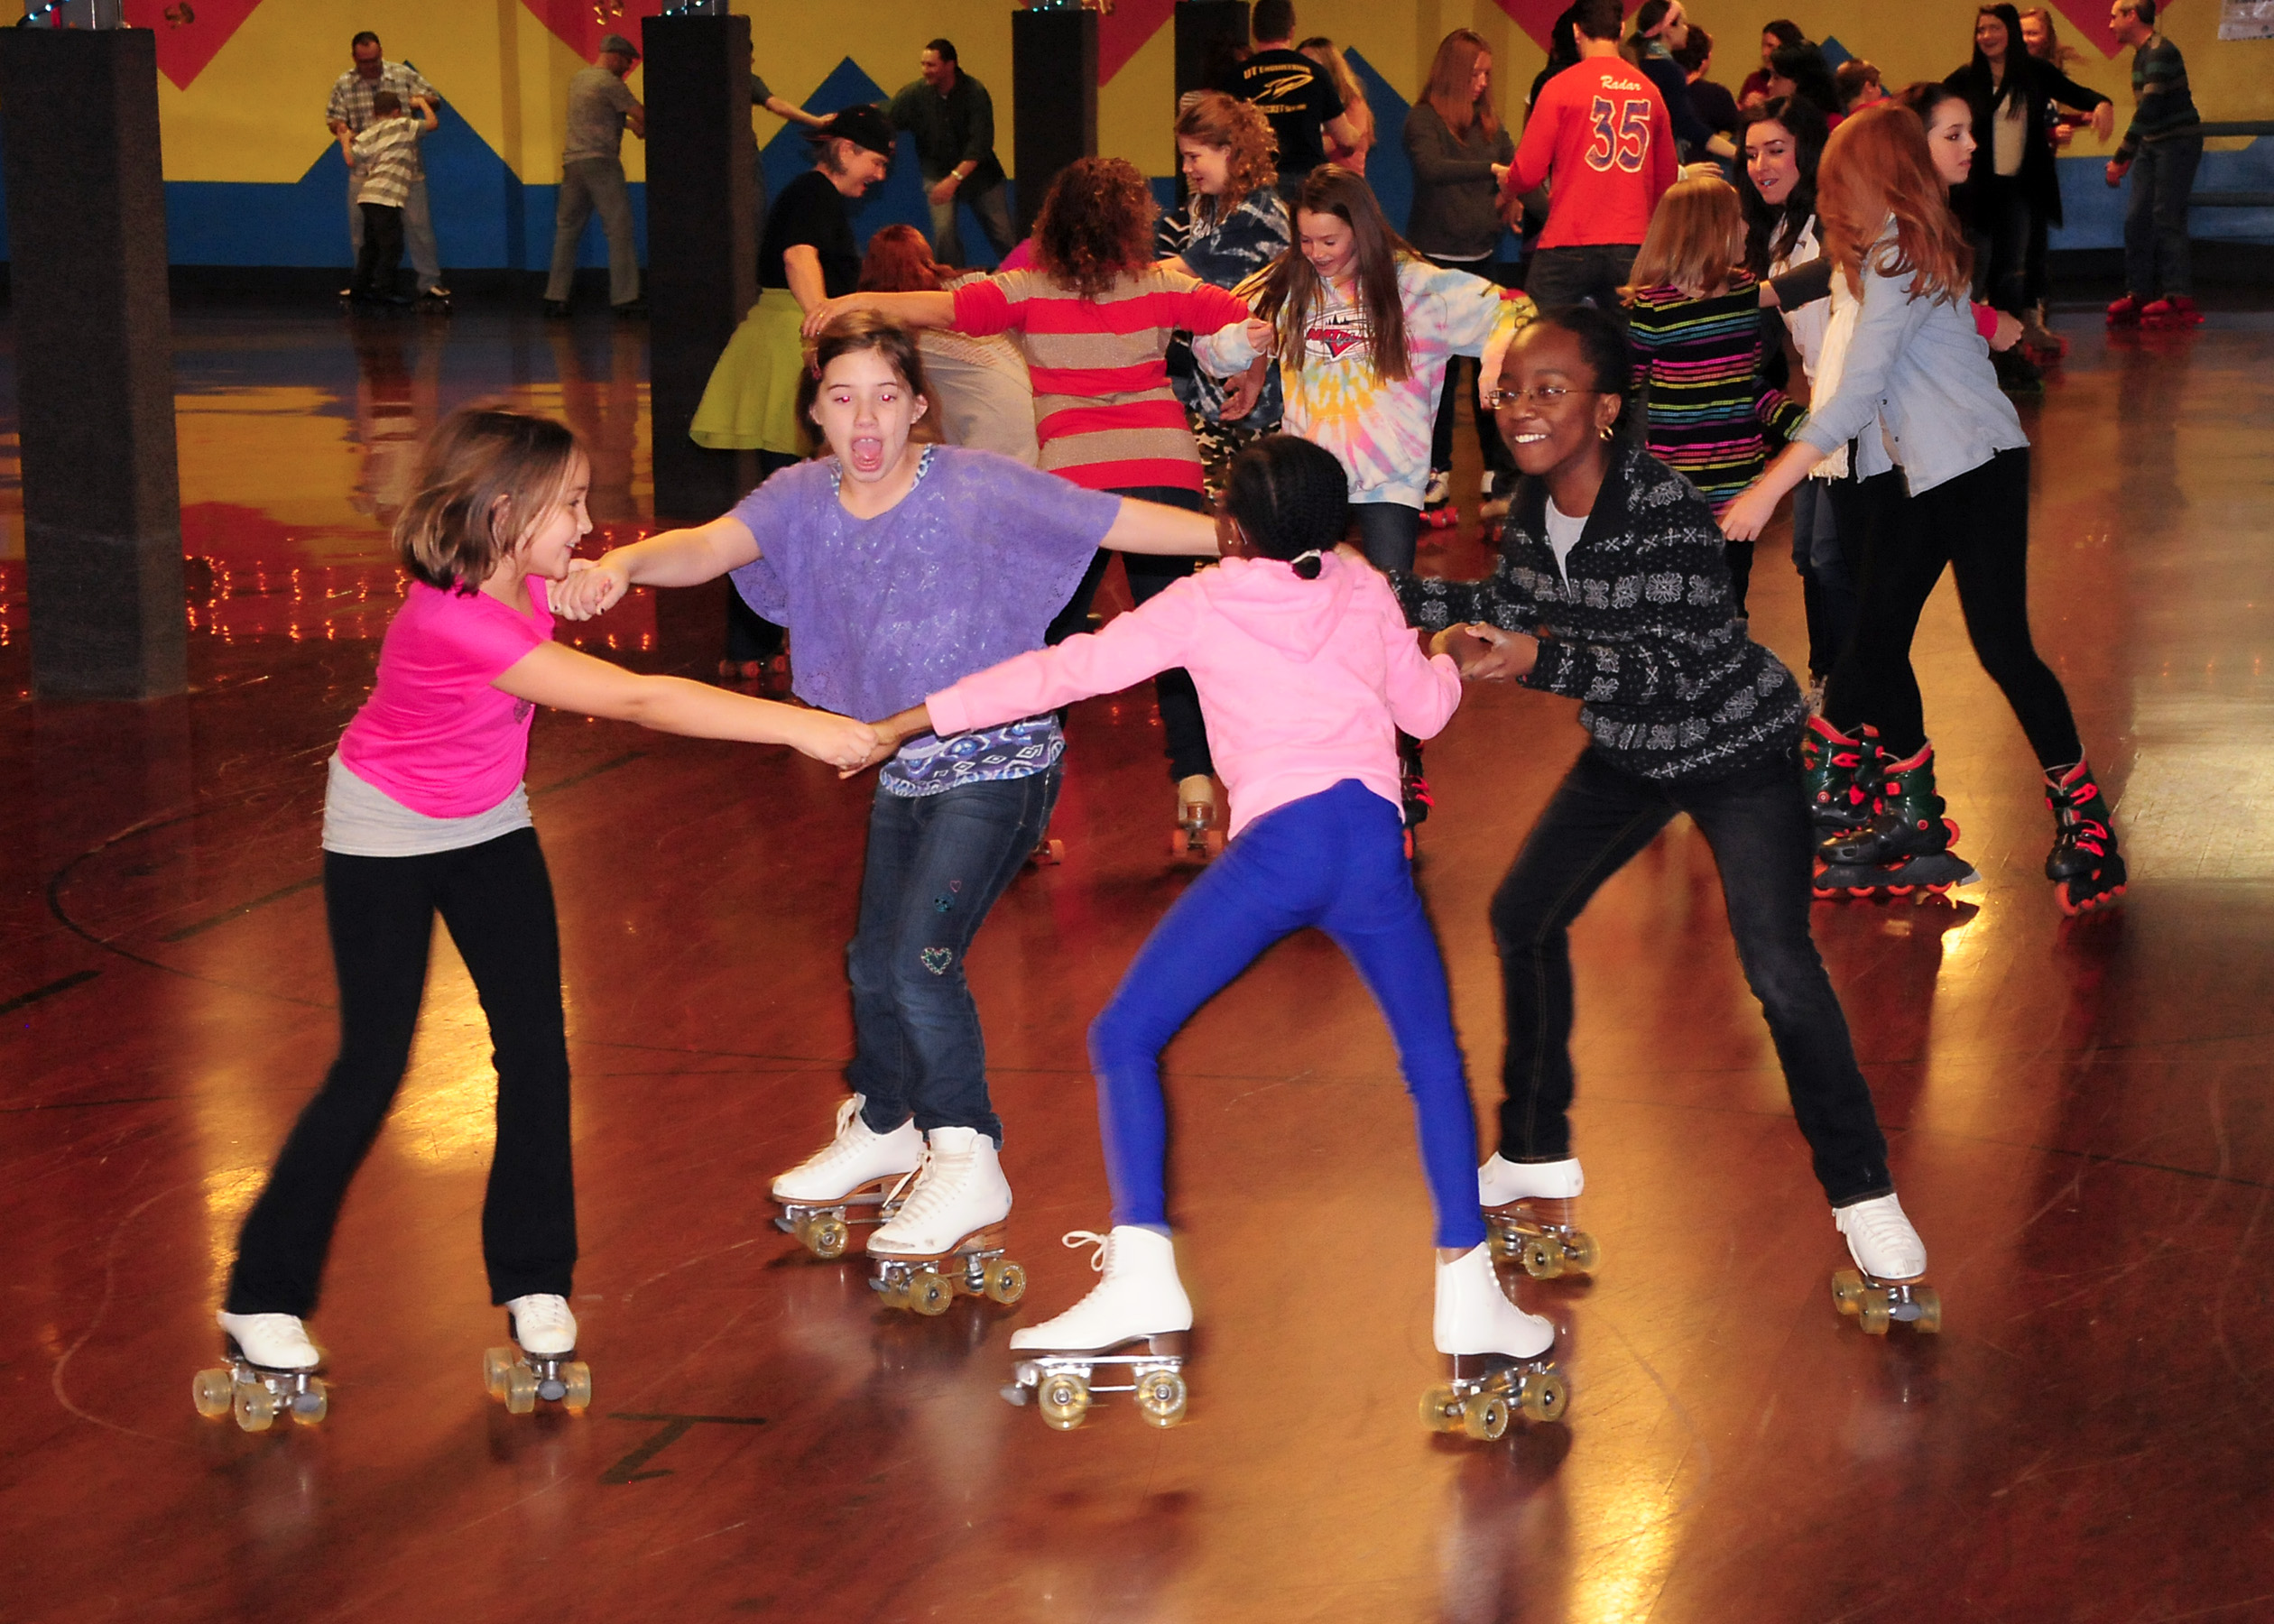 Roller skates dance -  Party Or Fundraiser From Retro Parties Birthday Parties School Skates And More Call Us At 440 247 4224 For Details Or To Schedule Your Party Today